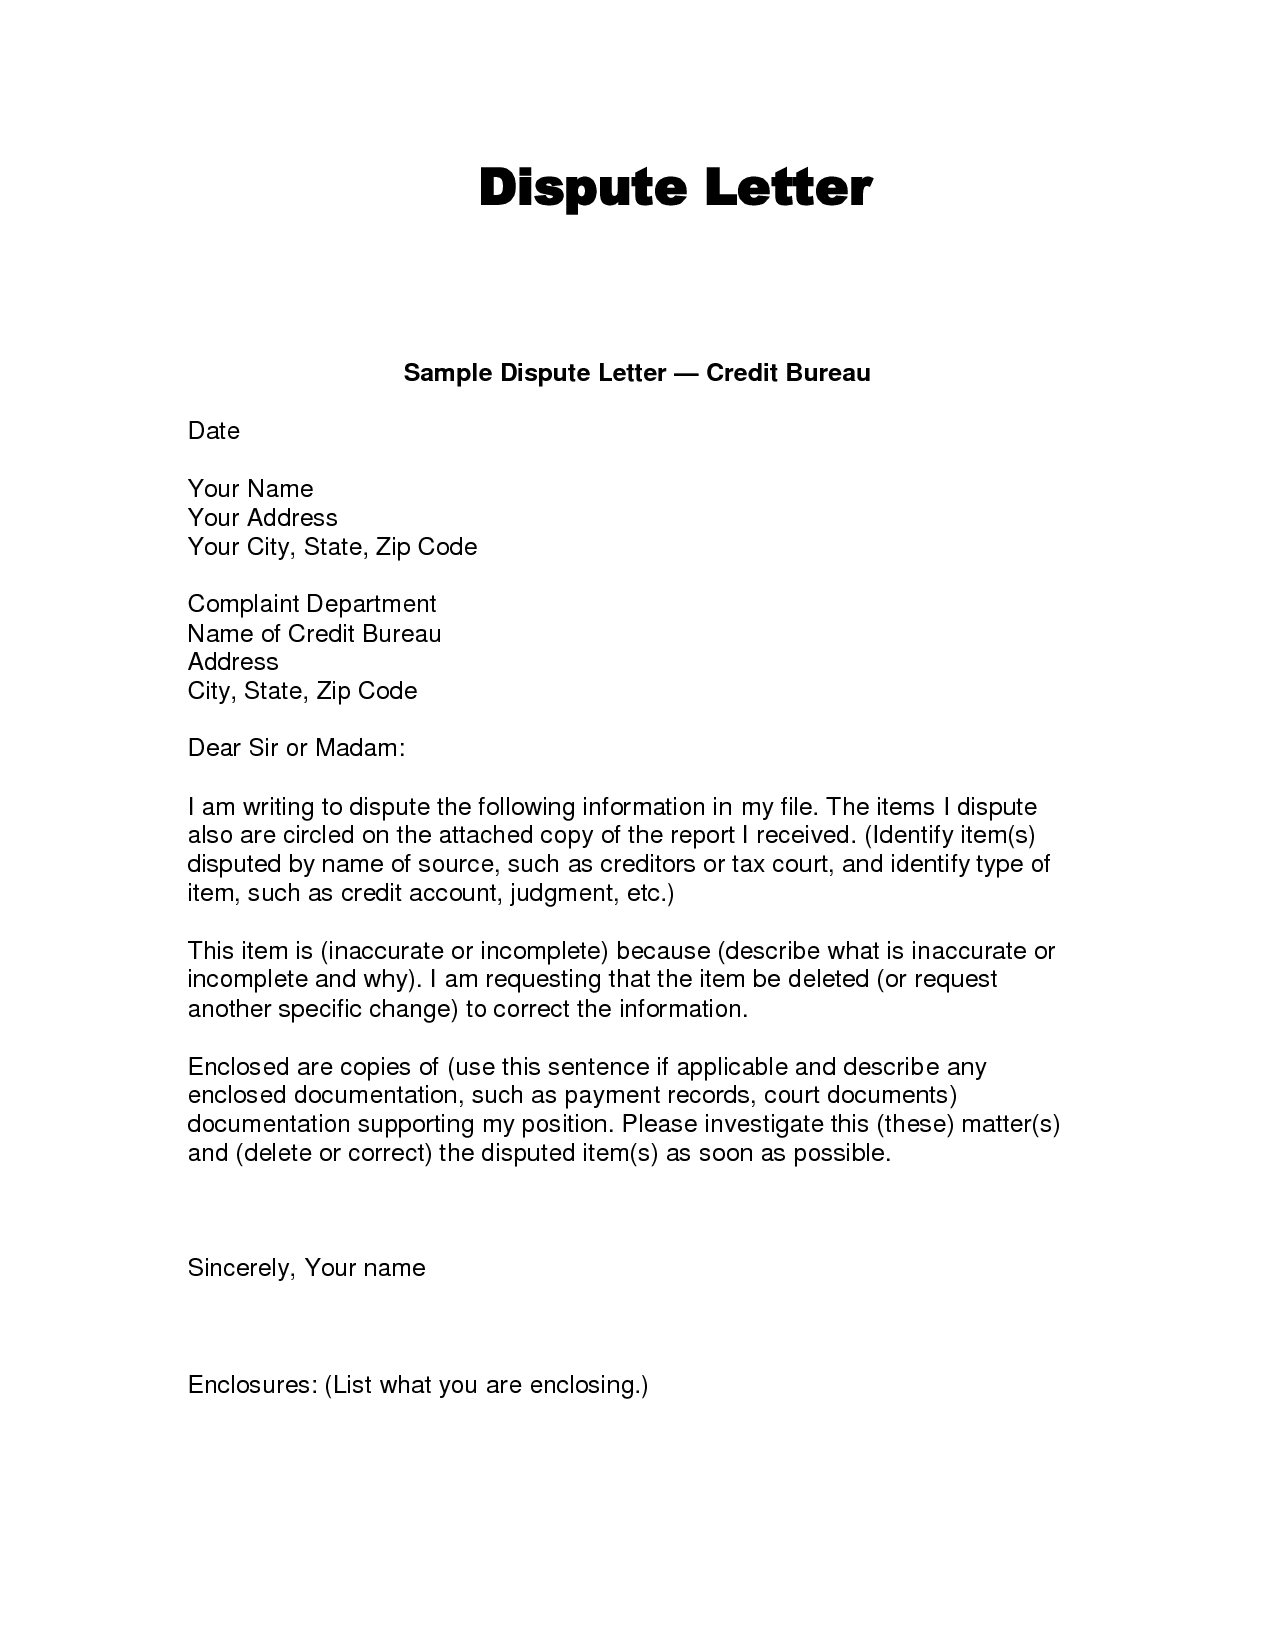 609 Dispute Letter Template - Credit Dispute Letter Templates Acurnamedia